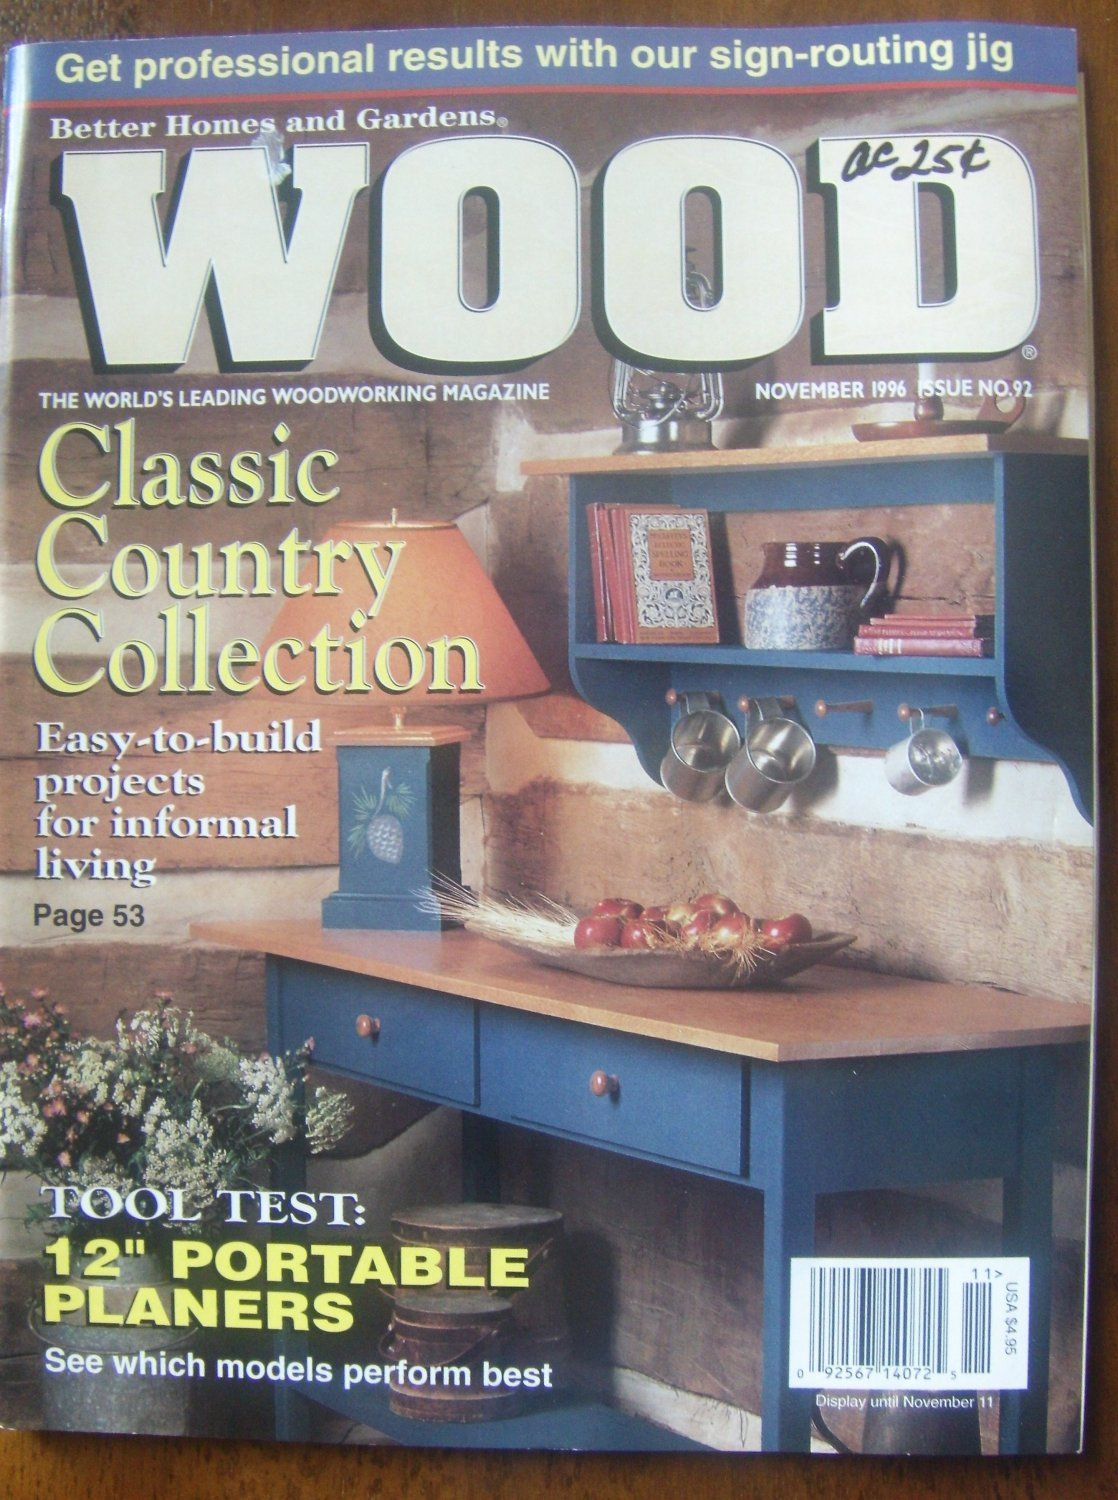 Better Homes U0026 Gardens Wood # 92 November 1996 Magazine Back Issues  If You  Are Not Buying From Me, Your Paying To Much! Ebay Alternative Site.